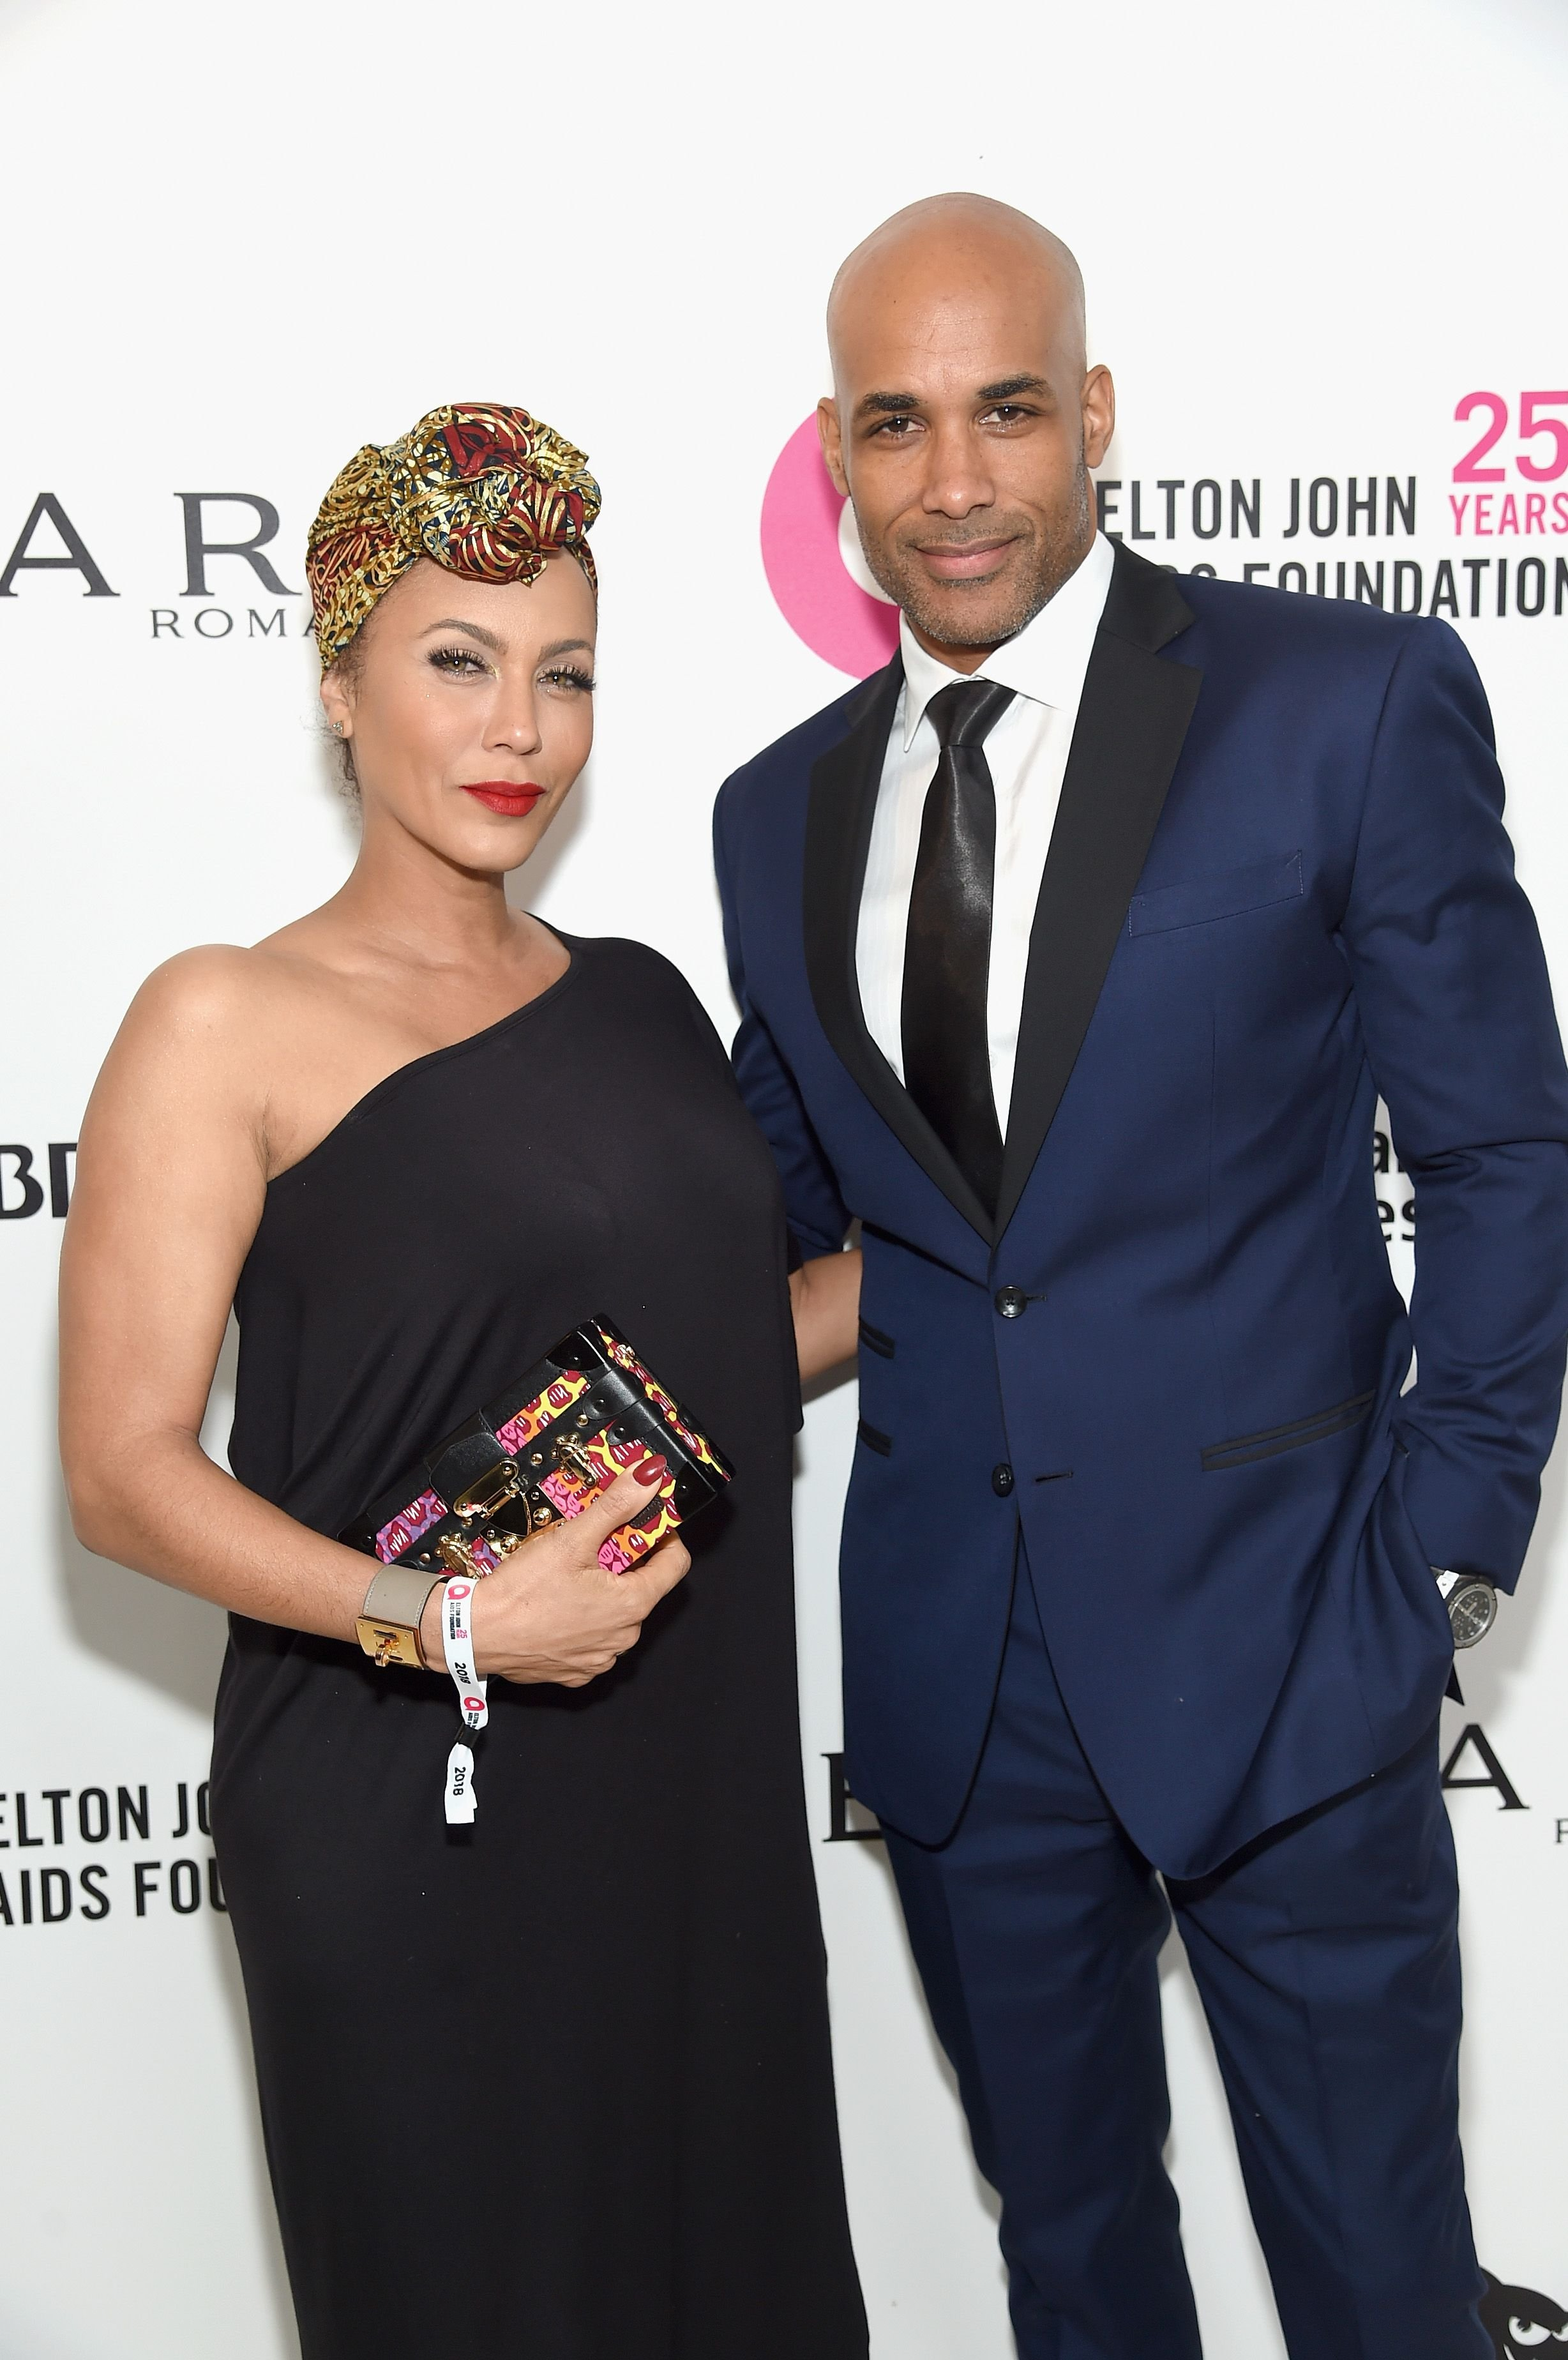 Nicole Ari Parker (L) and Boris Kodjoe attends the 26th annual Elton John AIDS Foundation Academy Awards Viewing Party at The City of West Hollywood Park on March 4, 2018 in West Hollywood, California. | Source: Getty Images